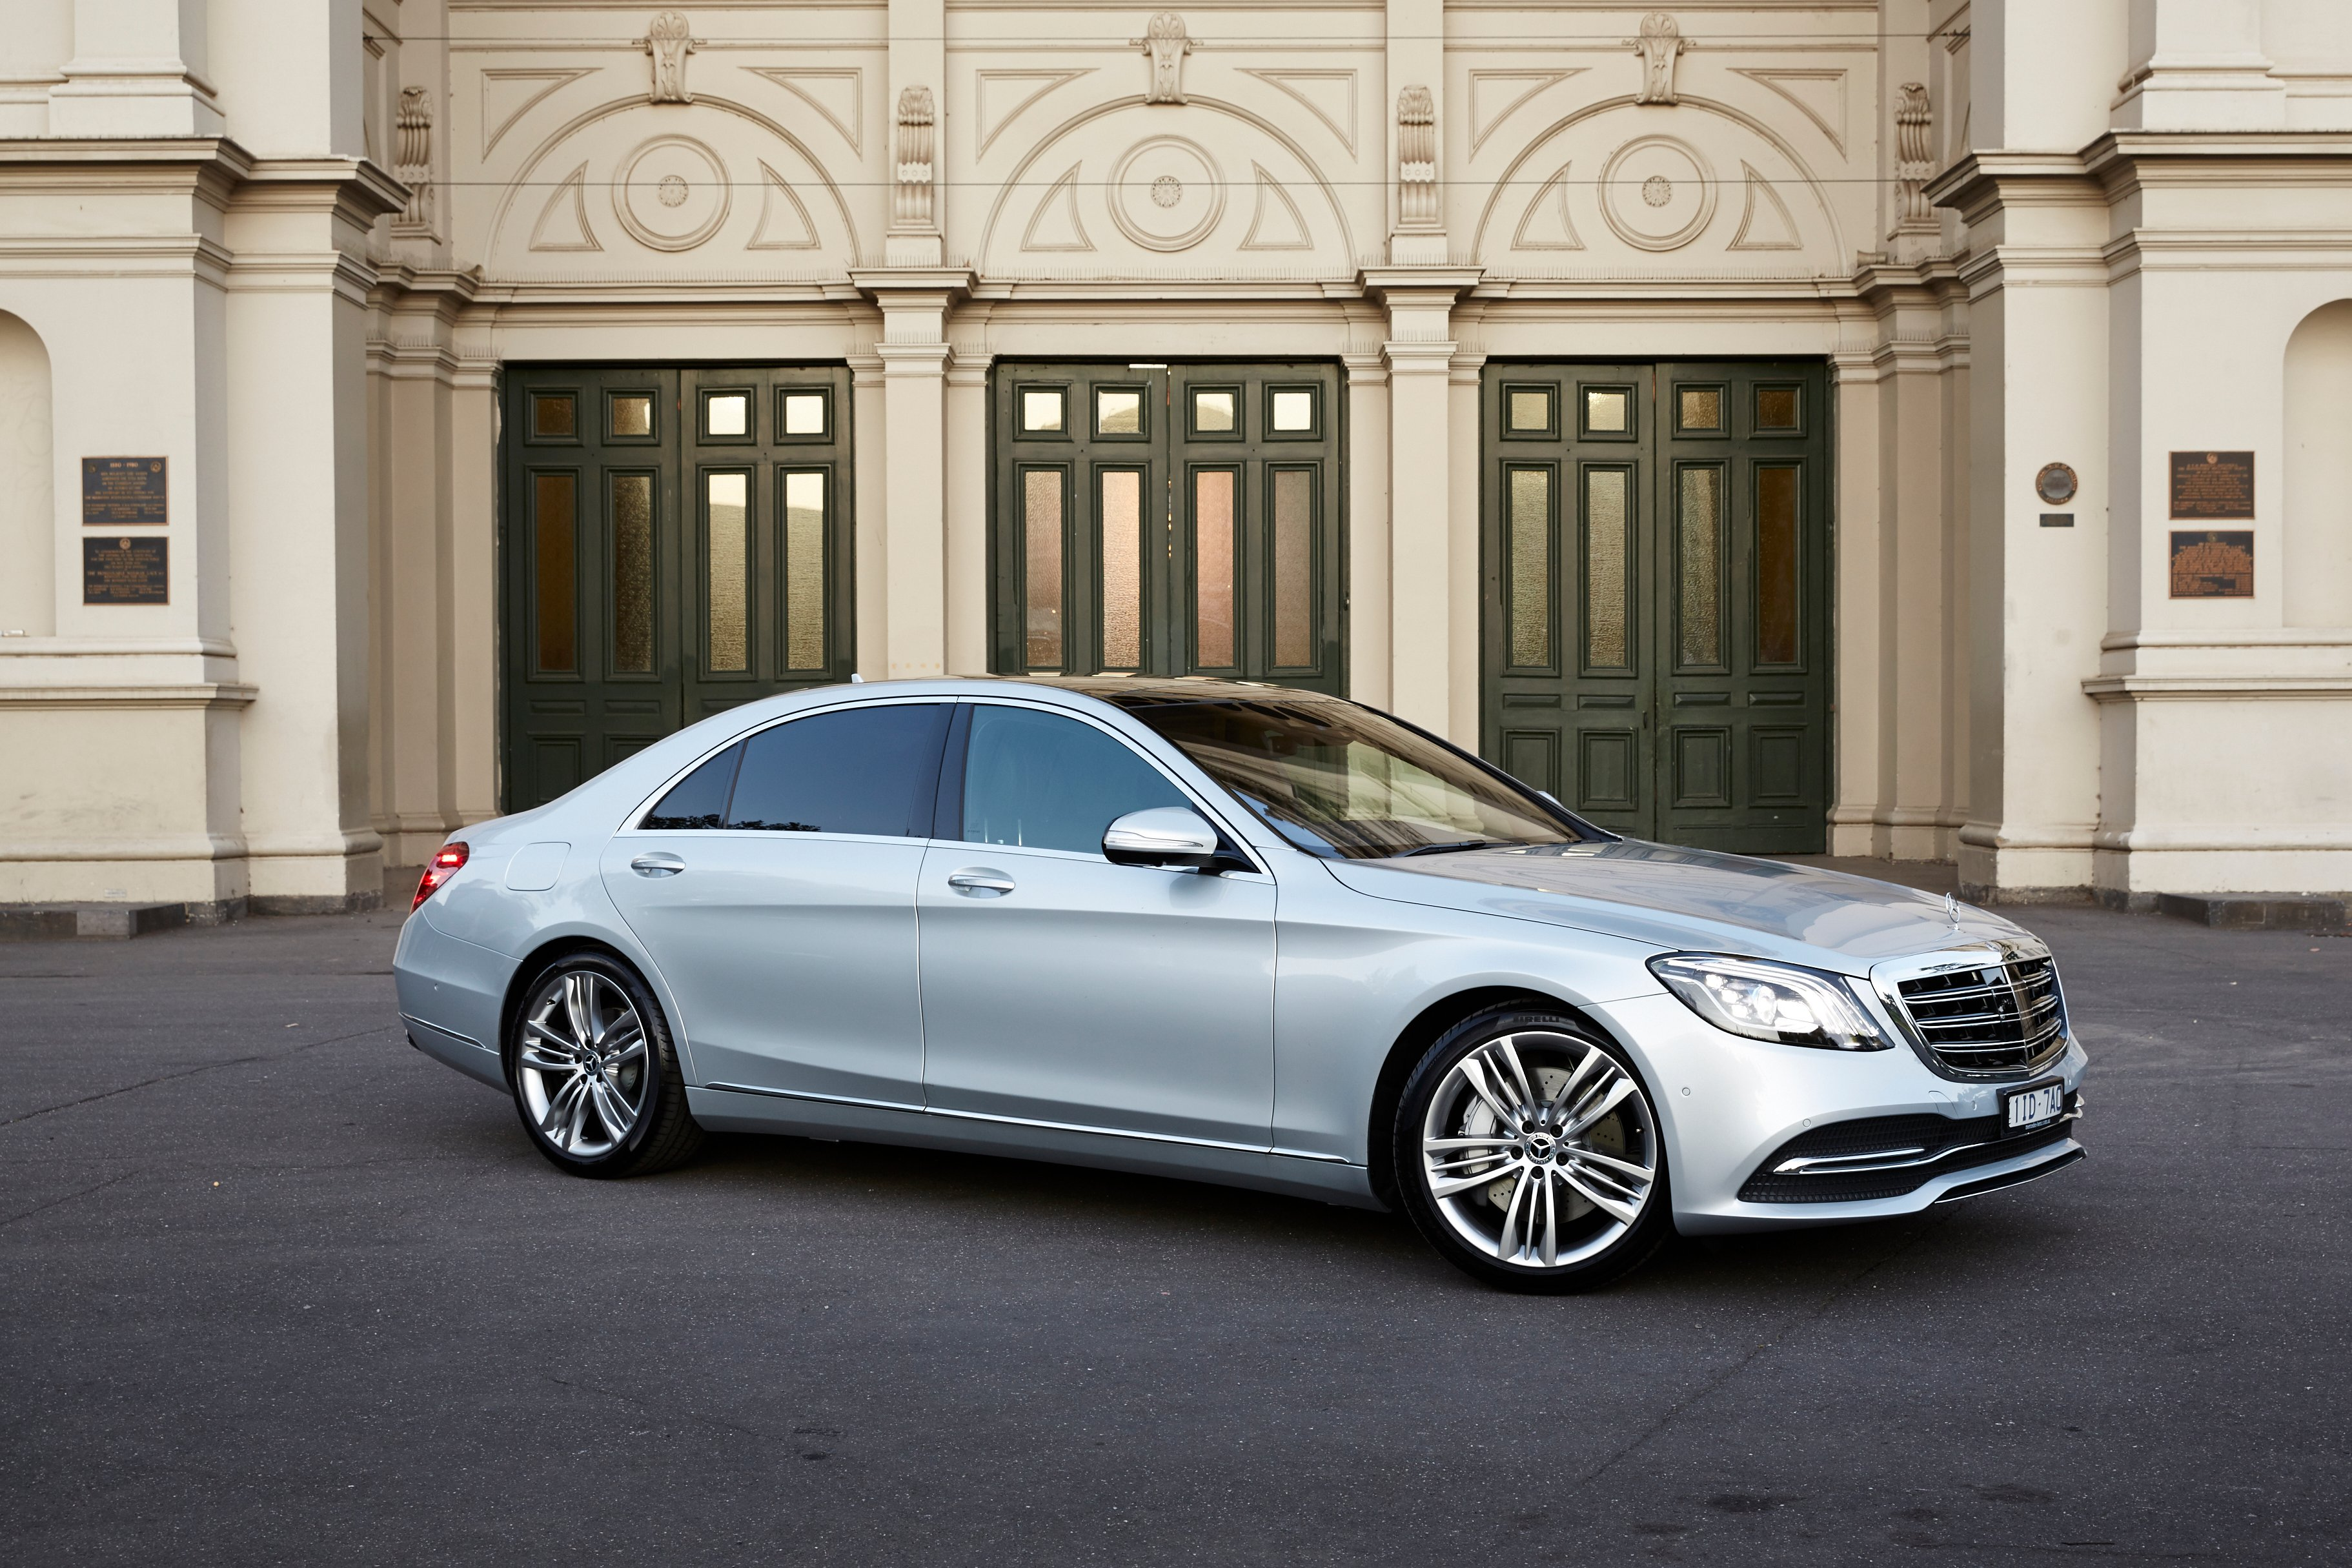 2018 Mercedes-Benz S-Class pricing and specs - Photos (1 of 3)